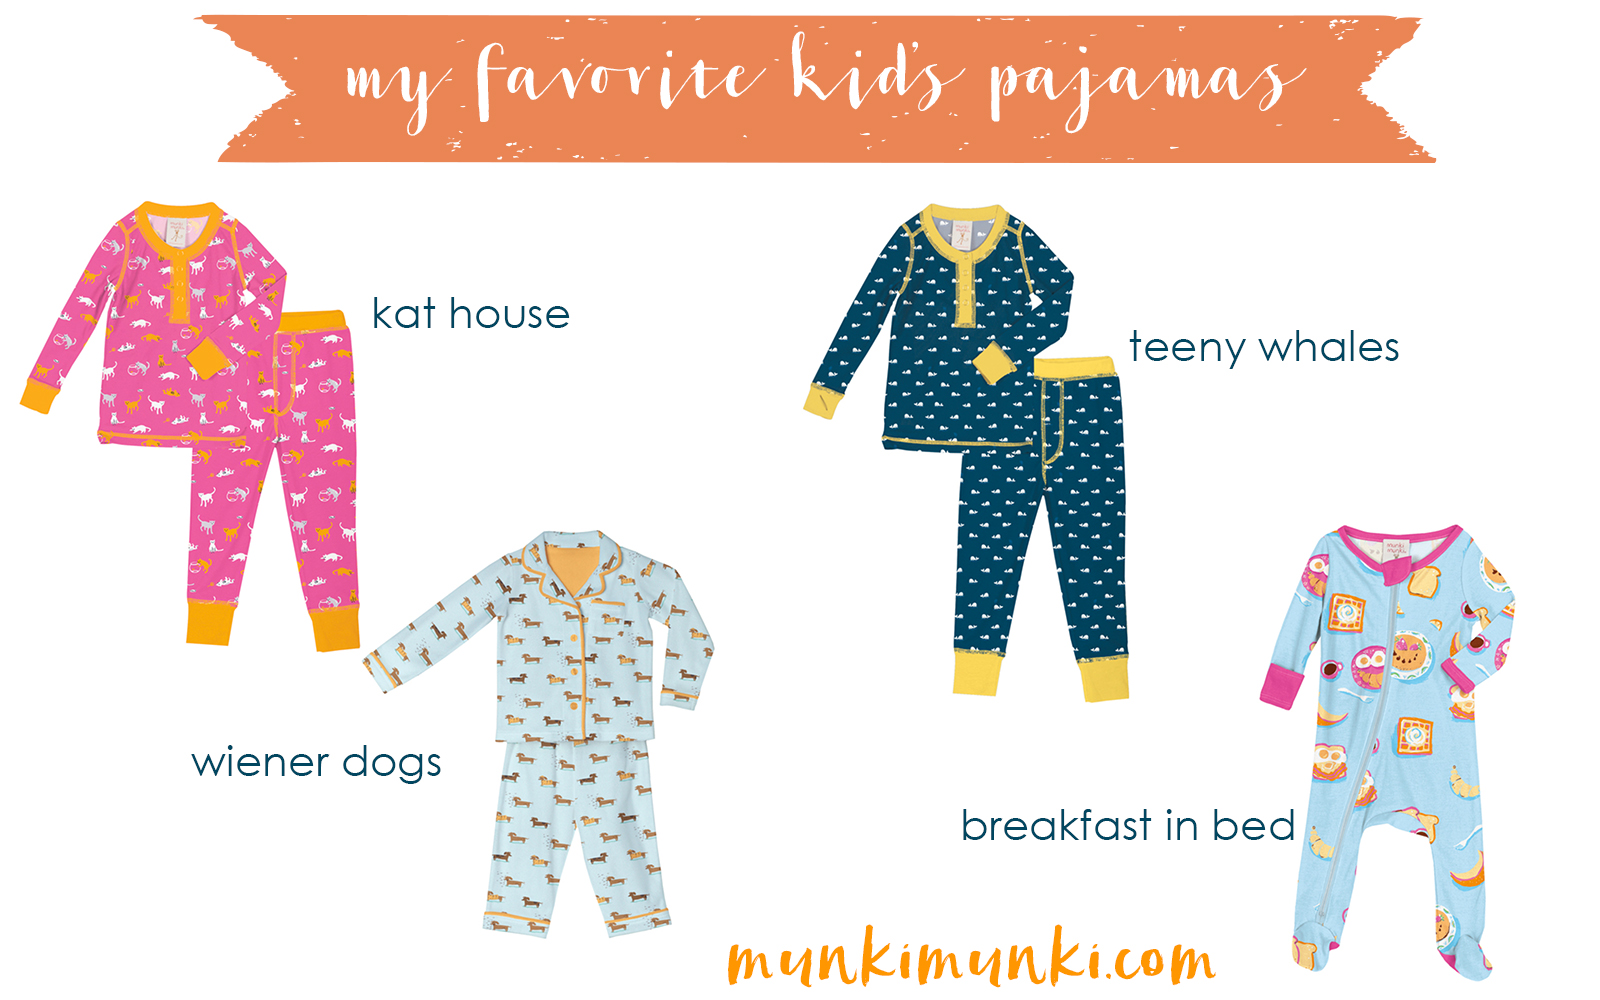 Gifts for Mom, Gifts for Her, Gifts for Girls, Gifts for Kids Holiday Gift Guide via Misty Nelson @frostedevents These pajamas from Munki Munki are so cute and cozy... #munkimunki